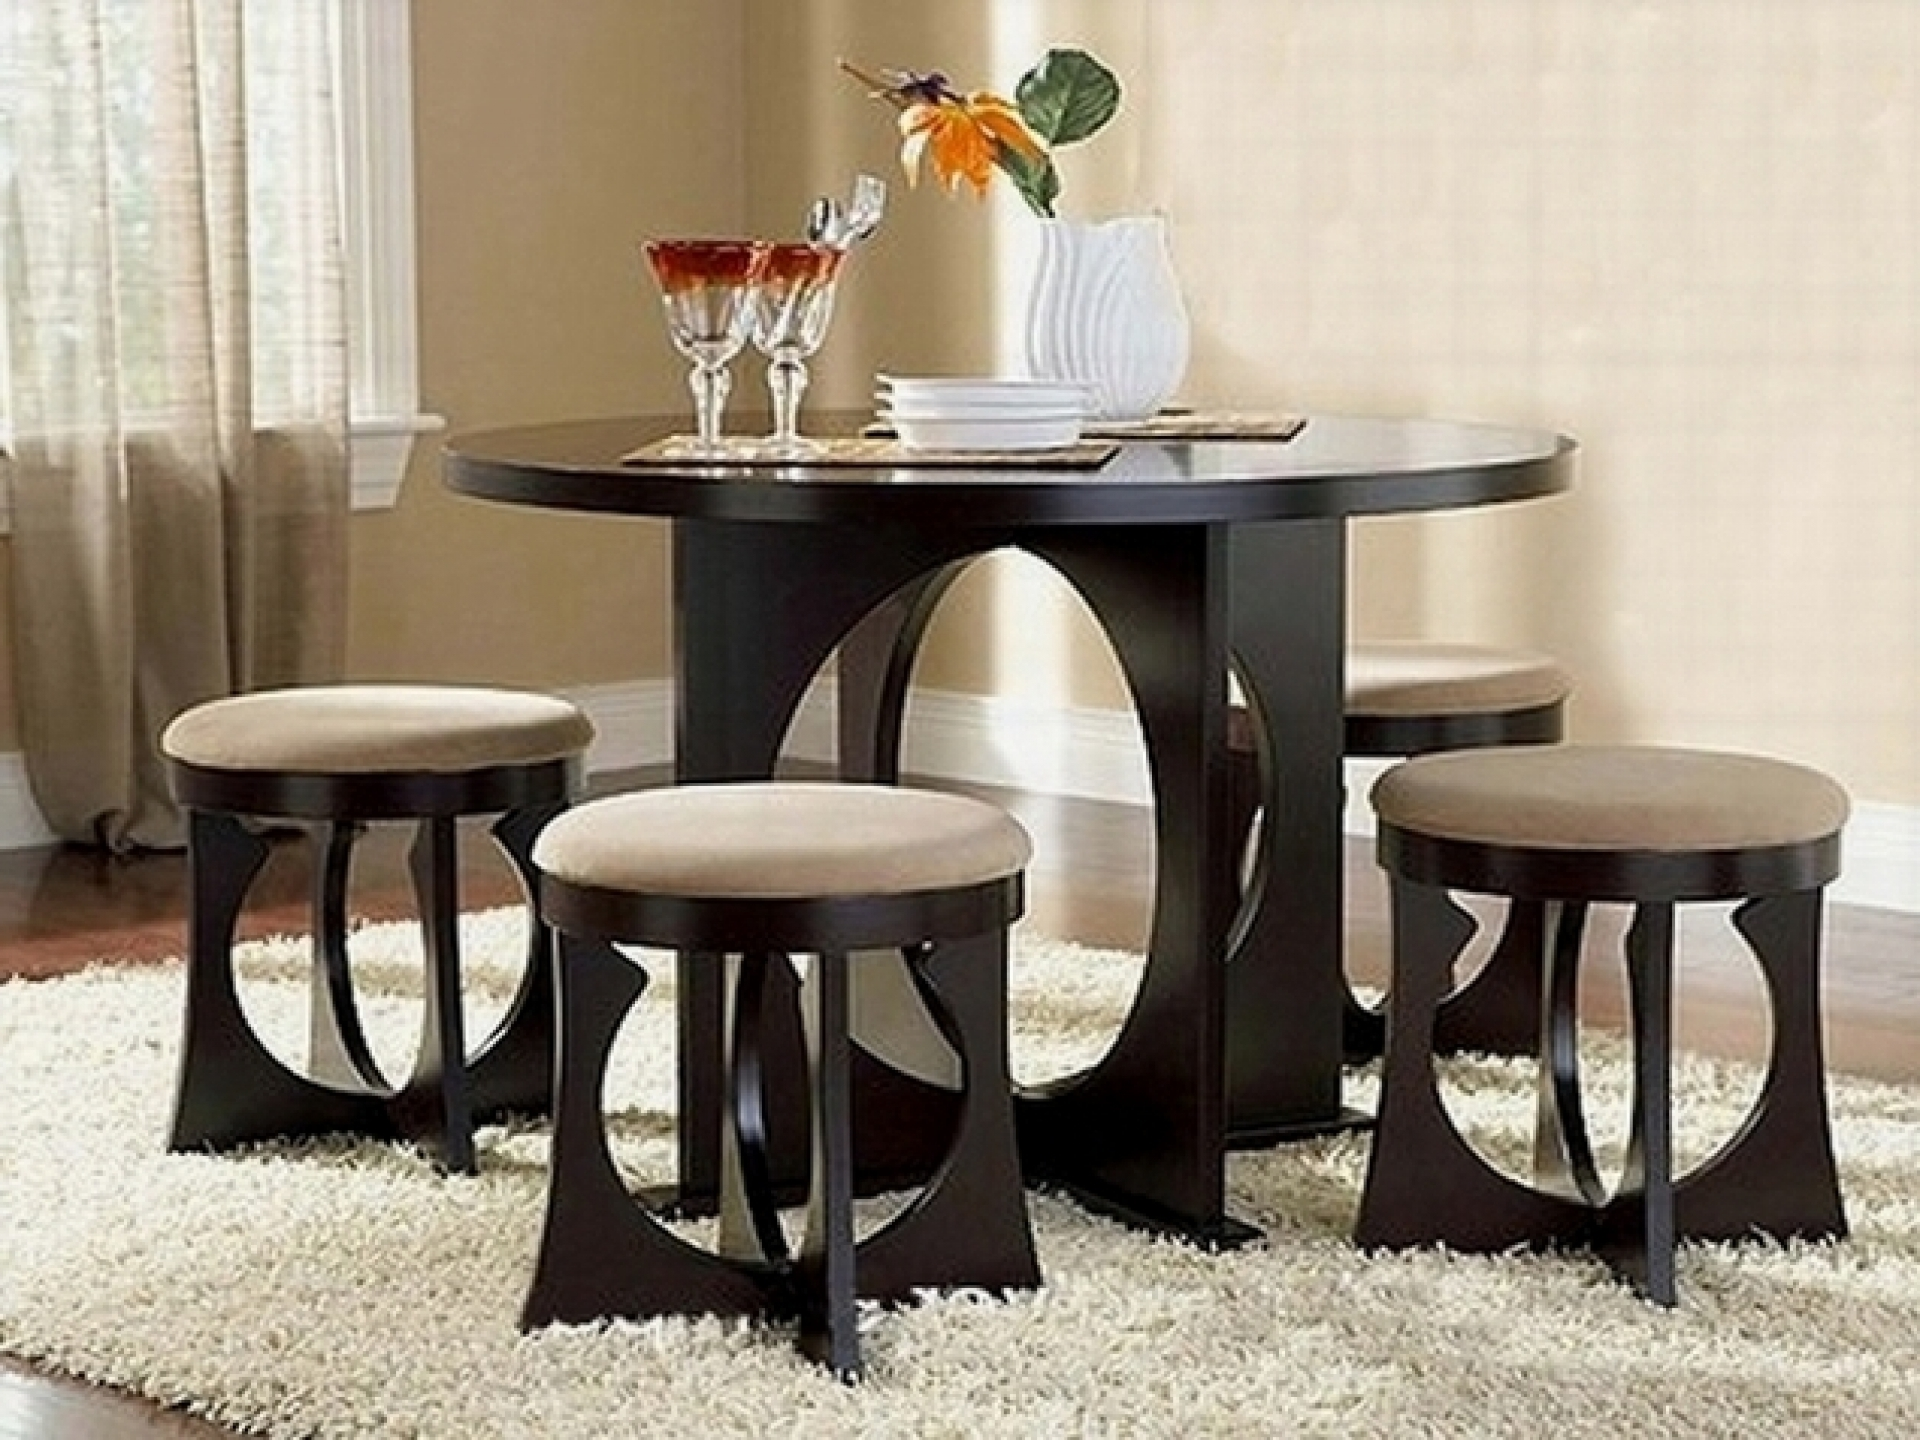 Compact Dining Room Sets Pertaining To Recent Dining Room Dining Table And Chairs For Small Rooms Compact Dining (Gallery 4 of 25)